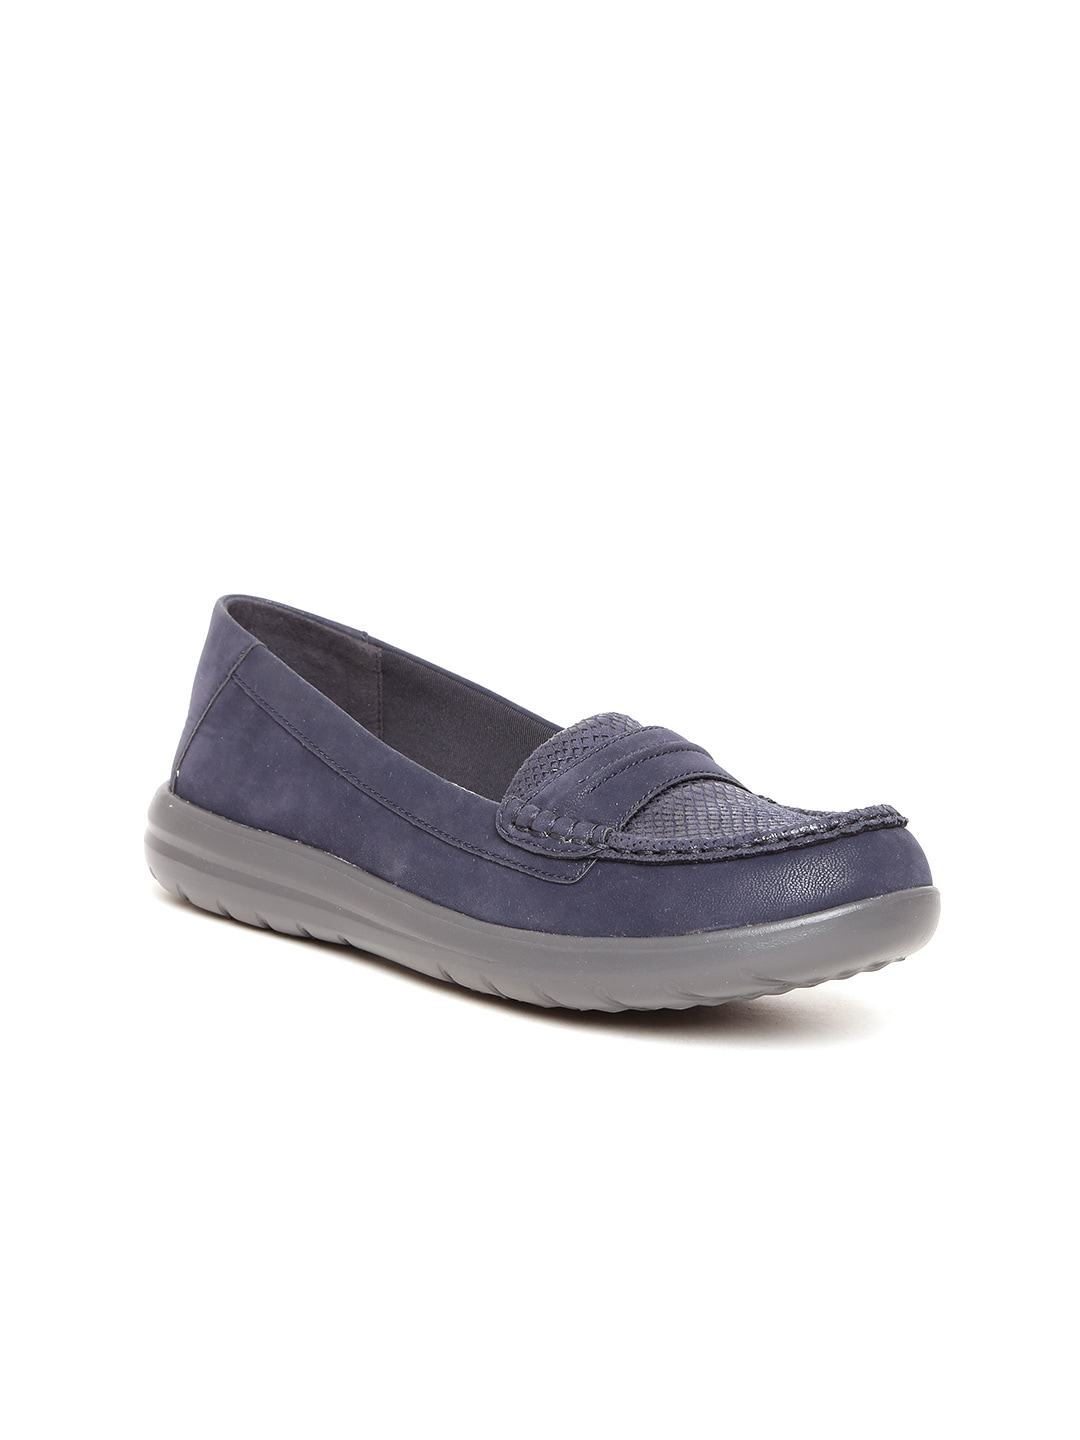 0f31d0d1bbc CLARKS - Exclusive Clarks Shoes Online Store in India - Myntra